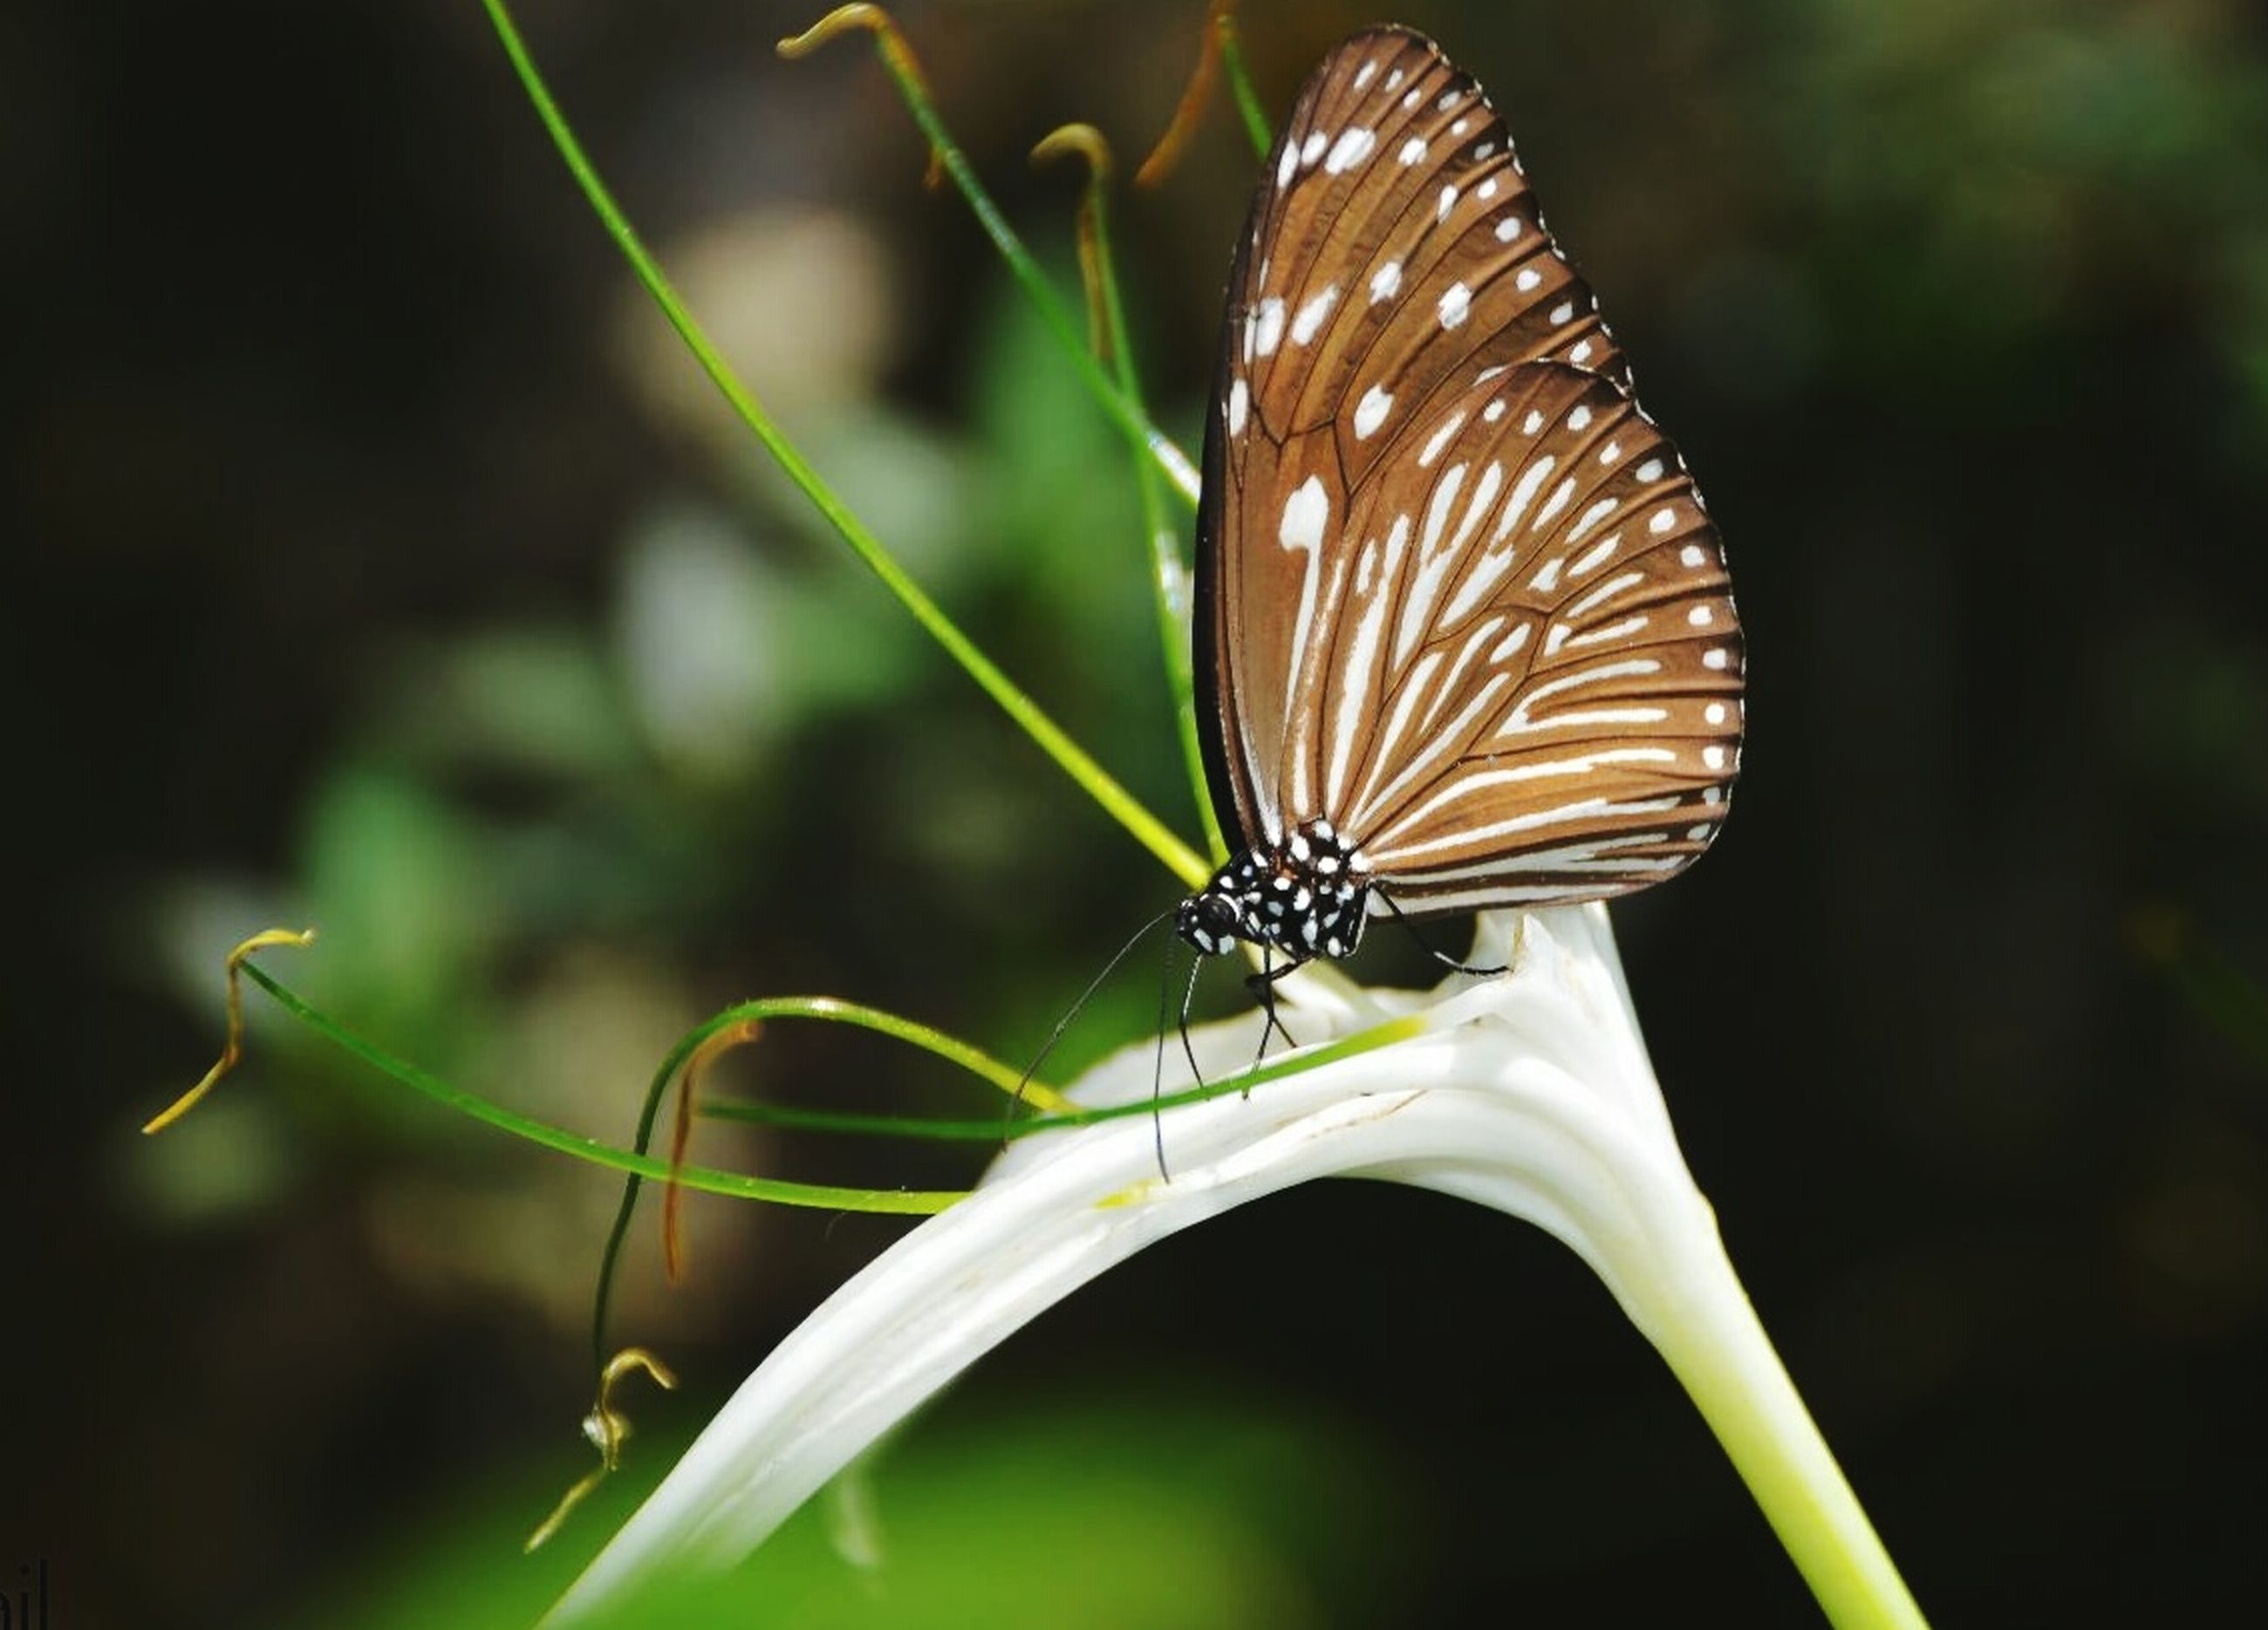 one animal, animal themes, animals in the wild, insect, wildlife, close-up, focus on foreground, animal wing, butterfly - insect, butterfly, animal markings, animal antenna, nature, natural pattern, beauty in nature, plant, zoology, outdoors, leaf, no people